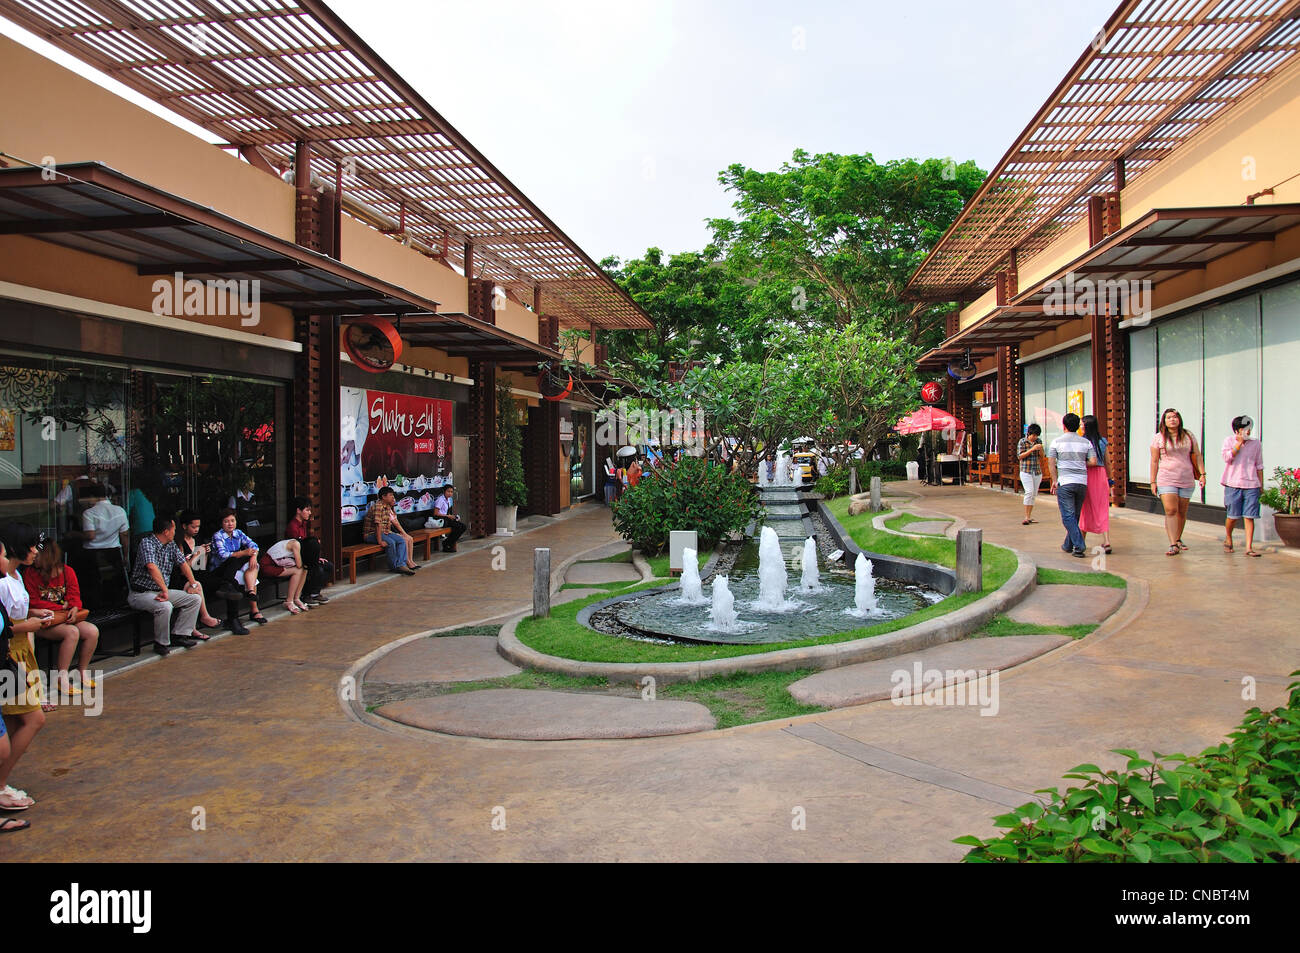 Image result for Pictures of open air shopping precincts